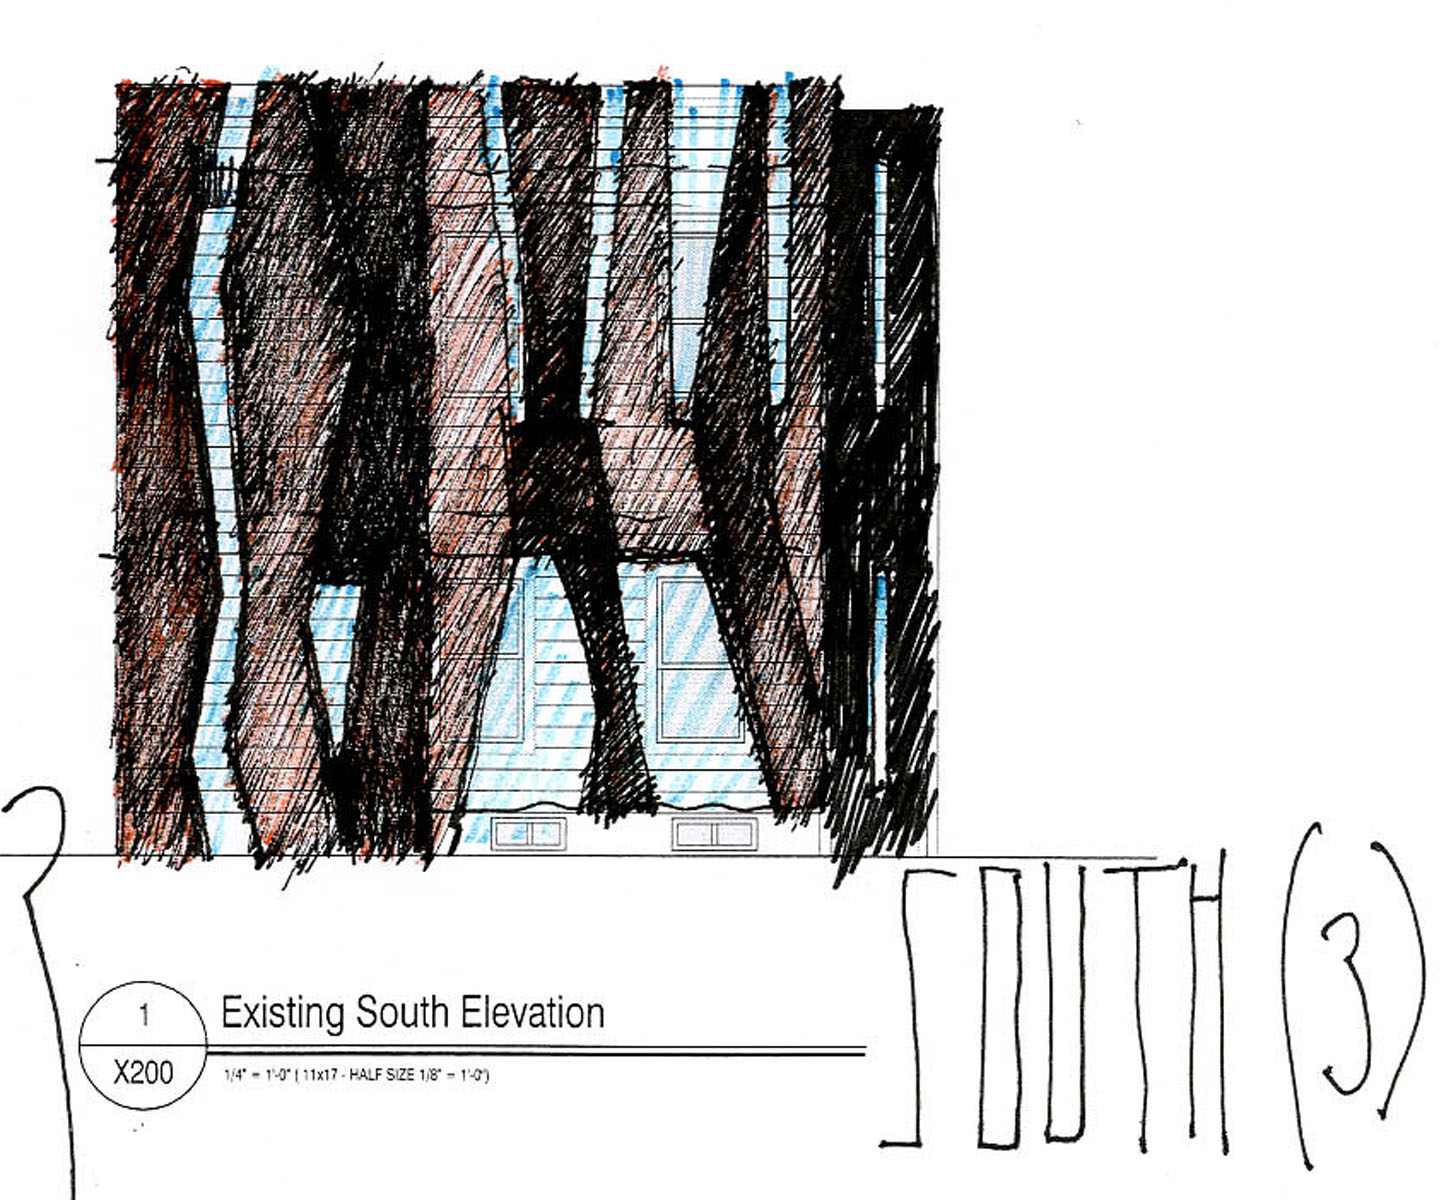 Front Elevation - Study of Rock Fissure Configuration